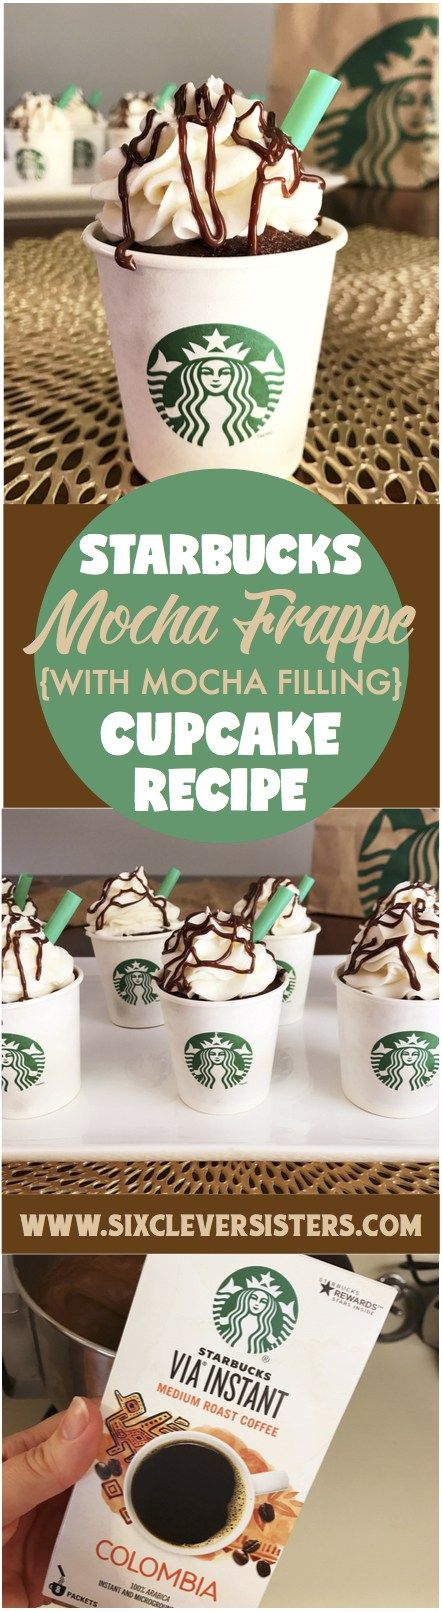 Starbucks Mocha Frappe Cupcakes   Mocha Filing   Starbucks Recipes   Cupcake Recipe   Party Food   Party   Coffee Lover   Starbucks Copycat   Starbucks Drinks   Chocolate Lover   Check out these Mocha Frappe Drinks on Six Clever Sisters!